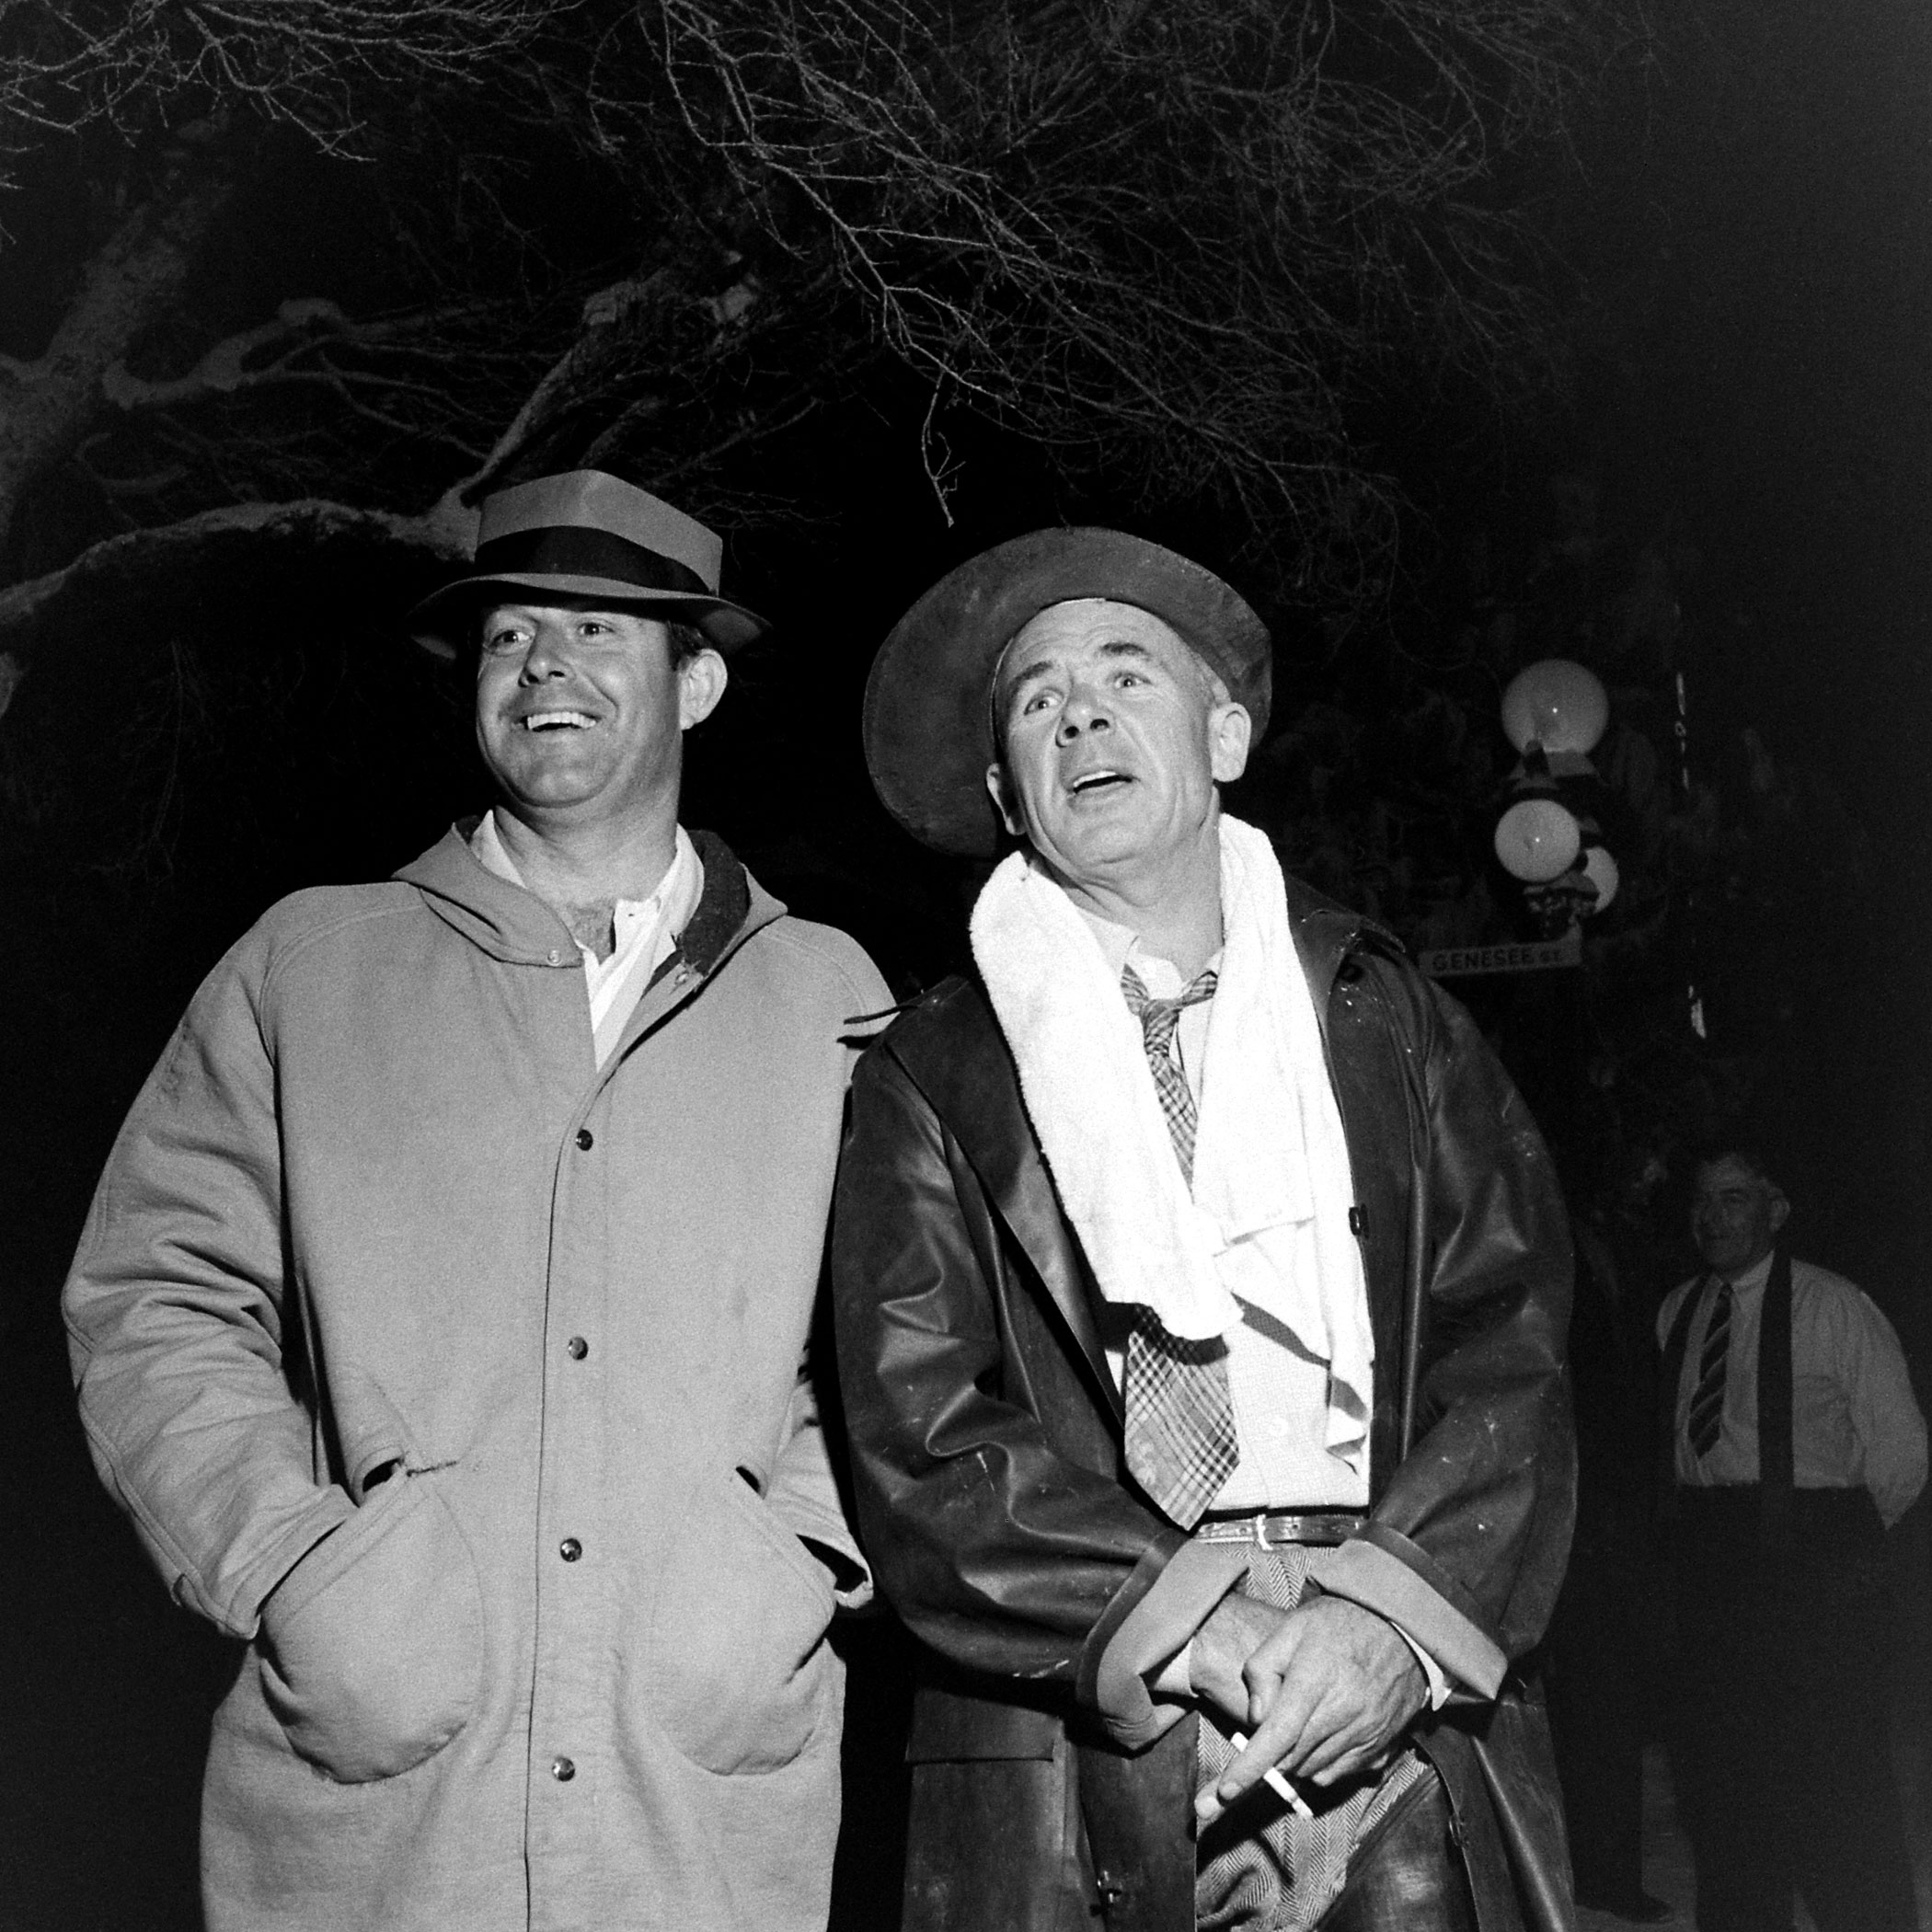 <b>Not published in LIFE.</b> Director Frank Capra (right, with unidentified man) on the set of <i>It's a Wonderful Life</i>.